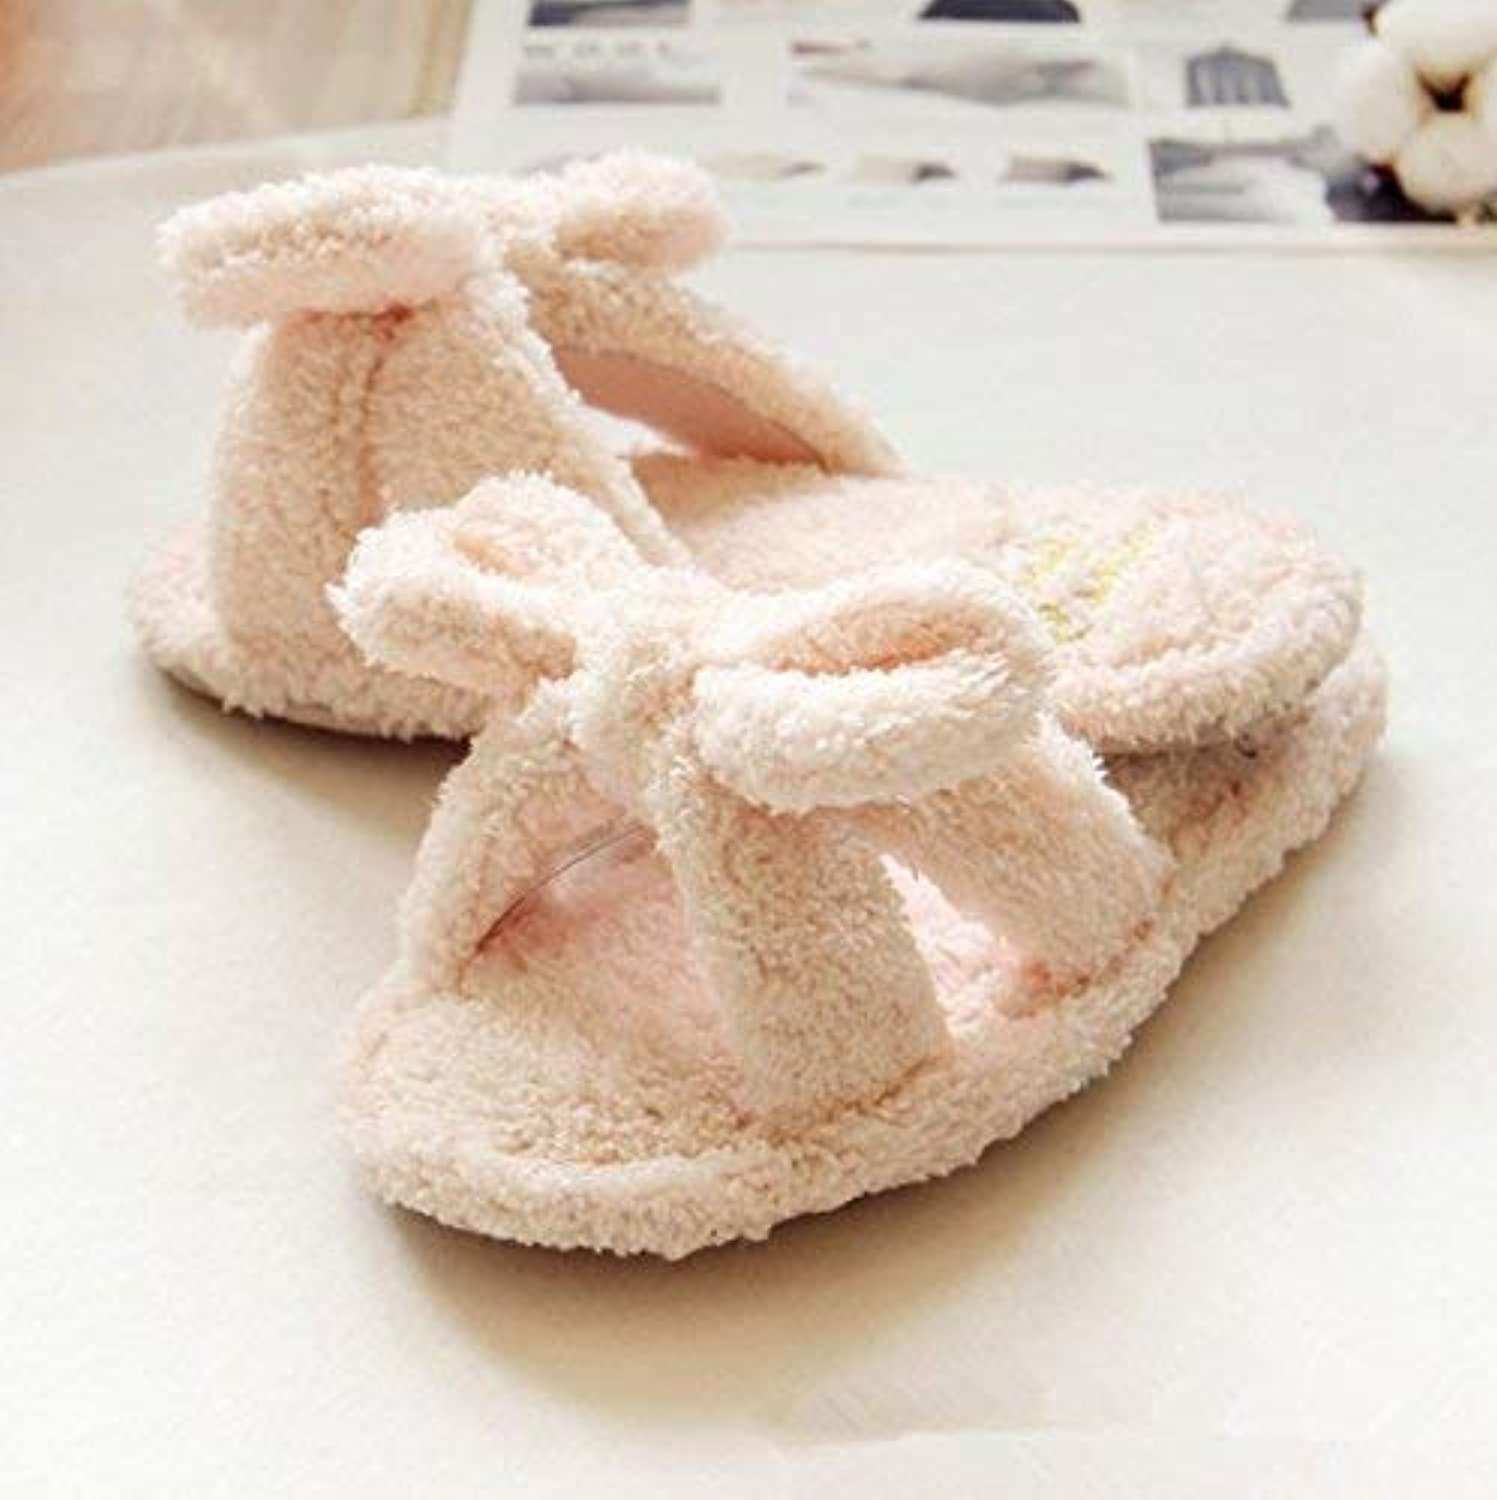 JaHGDU Lady Leisure at Home Spring and Autumn Plush Slippers Home Slippers Warm Pink White Slippers for Women